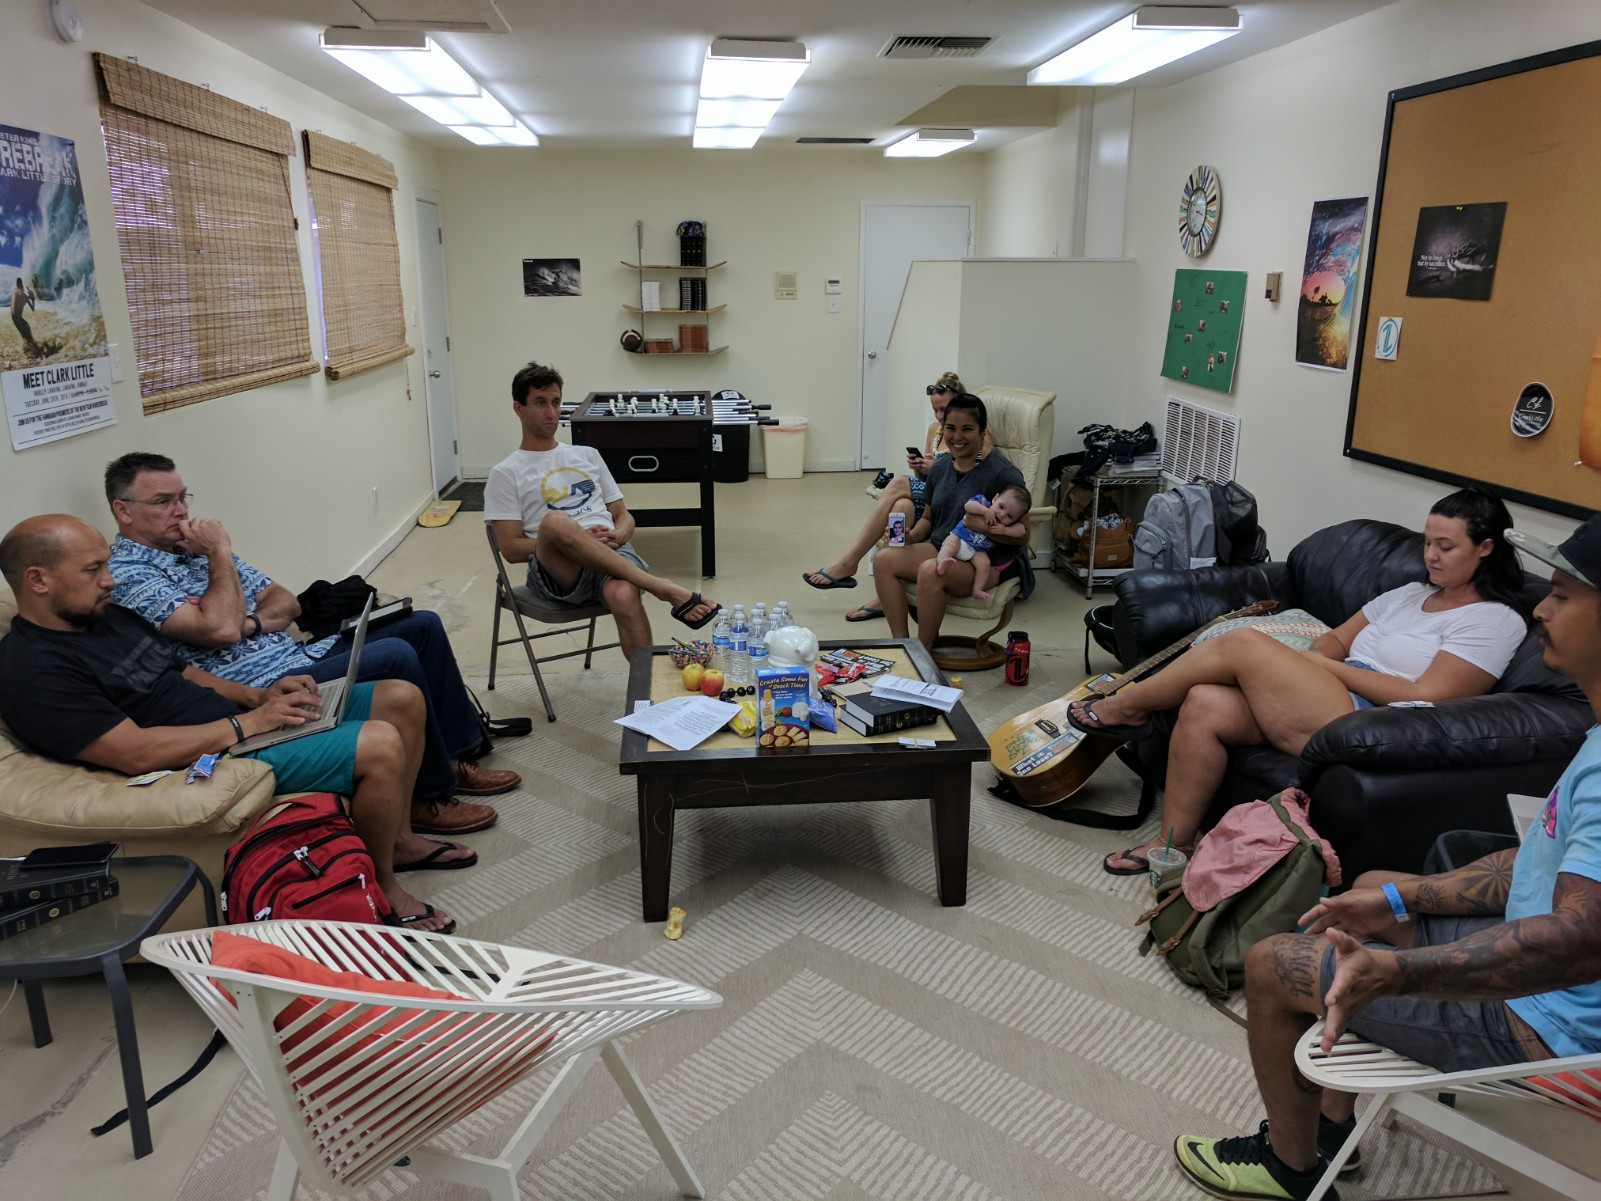 The air-conditioned, One Love Room at Lahaina Baptist was the perfect place for our Board of Director's Meeting last Saturday!  We are so thankful for these servants on the 1L Board of Directors from Maui, Oahu, and North Carolina. These amazing people help share the load of logistics, funding, and prayer to help make the ministry of One Love transformational in Hawaii and many more places all around the world!